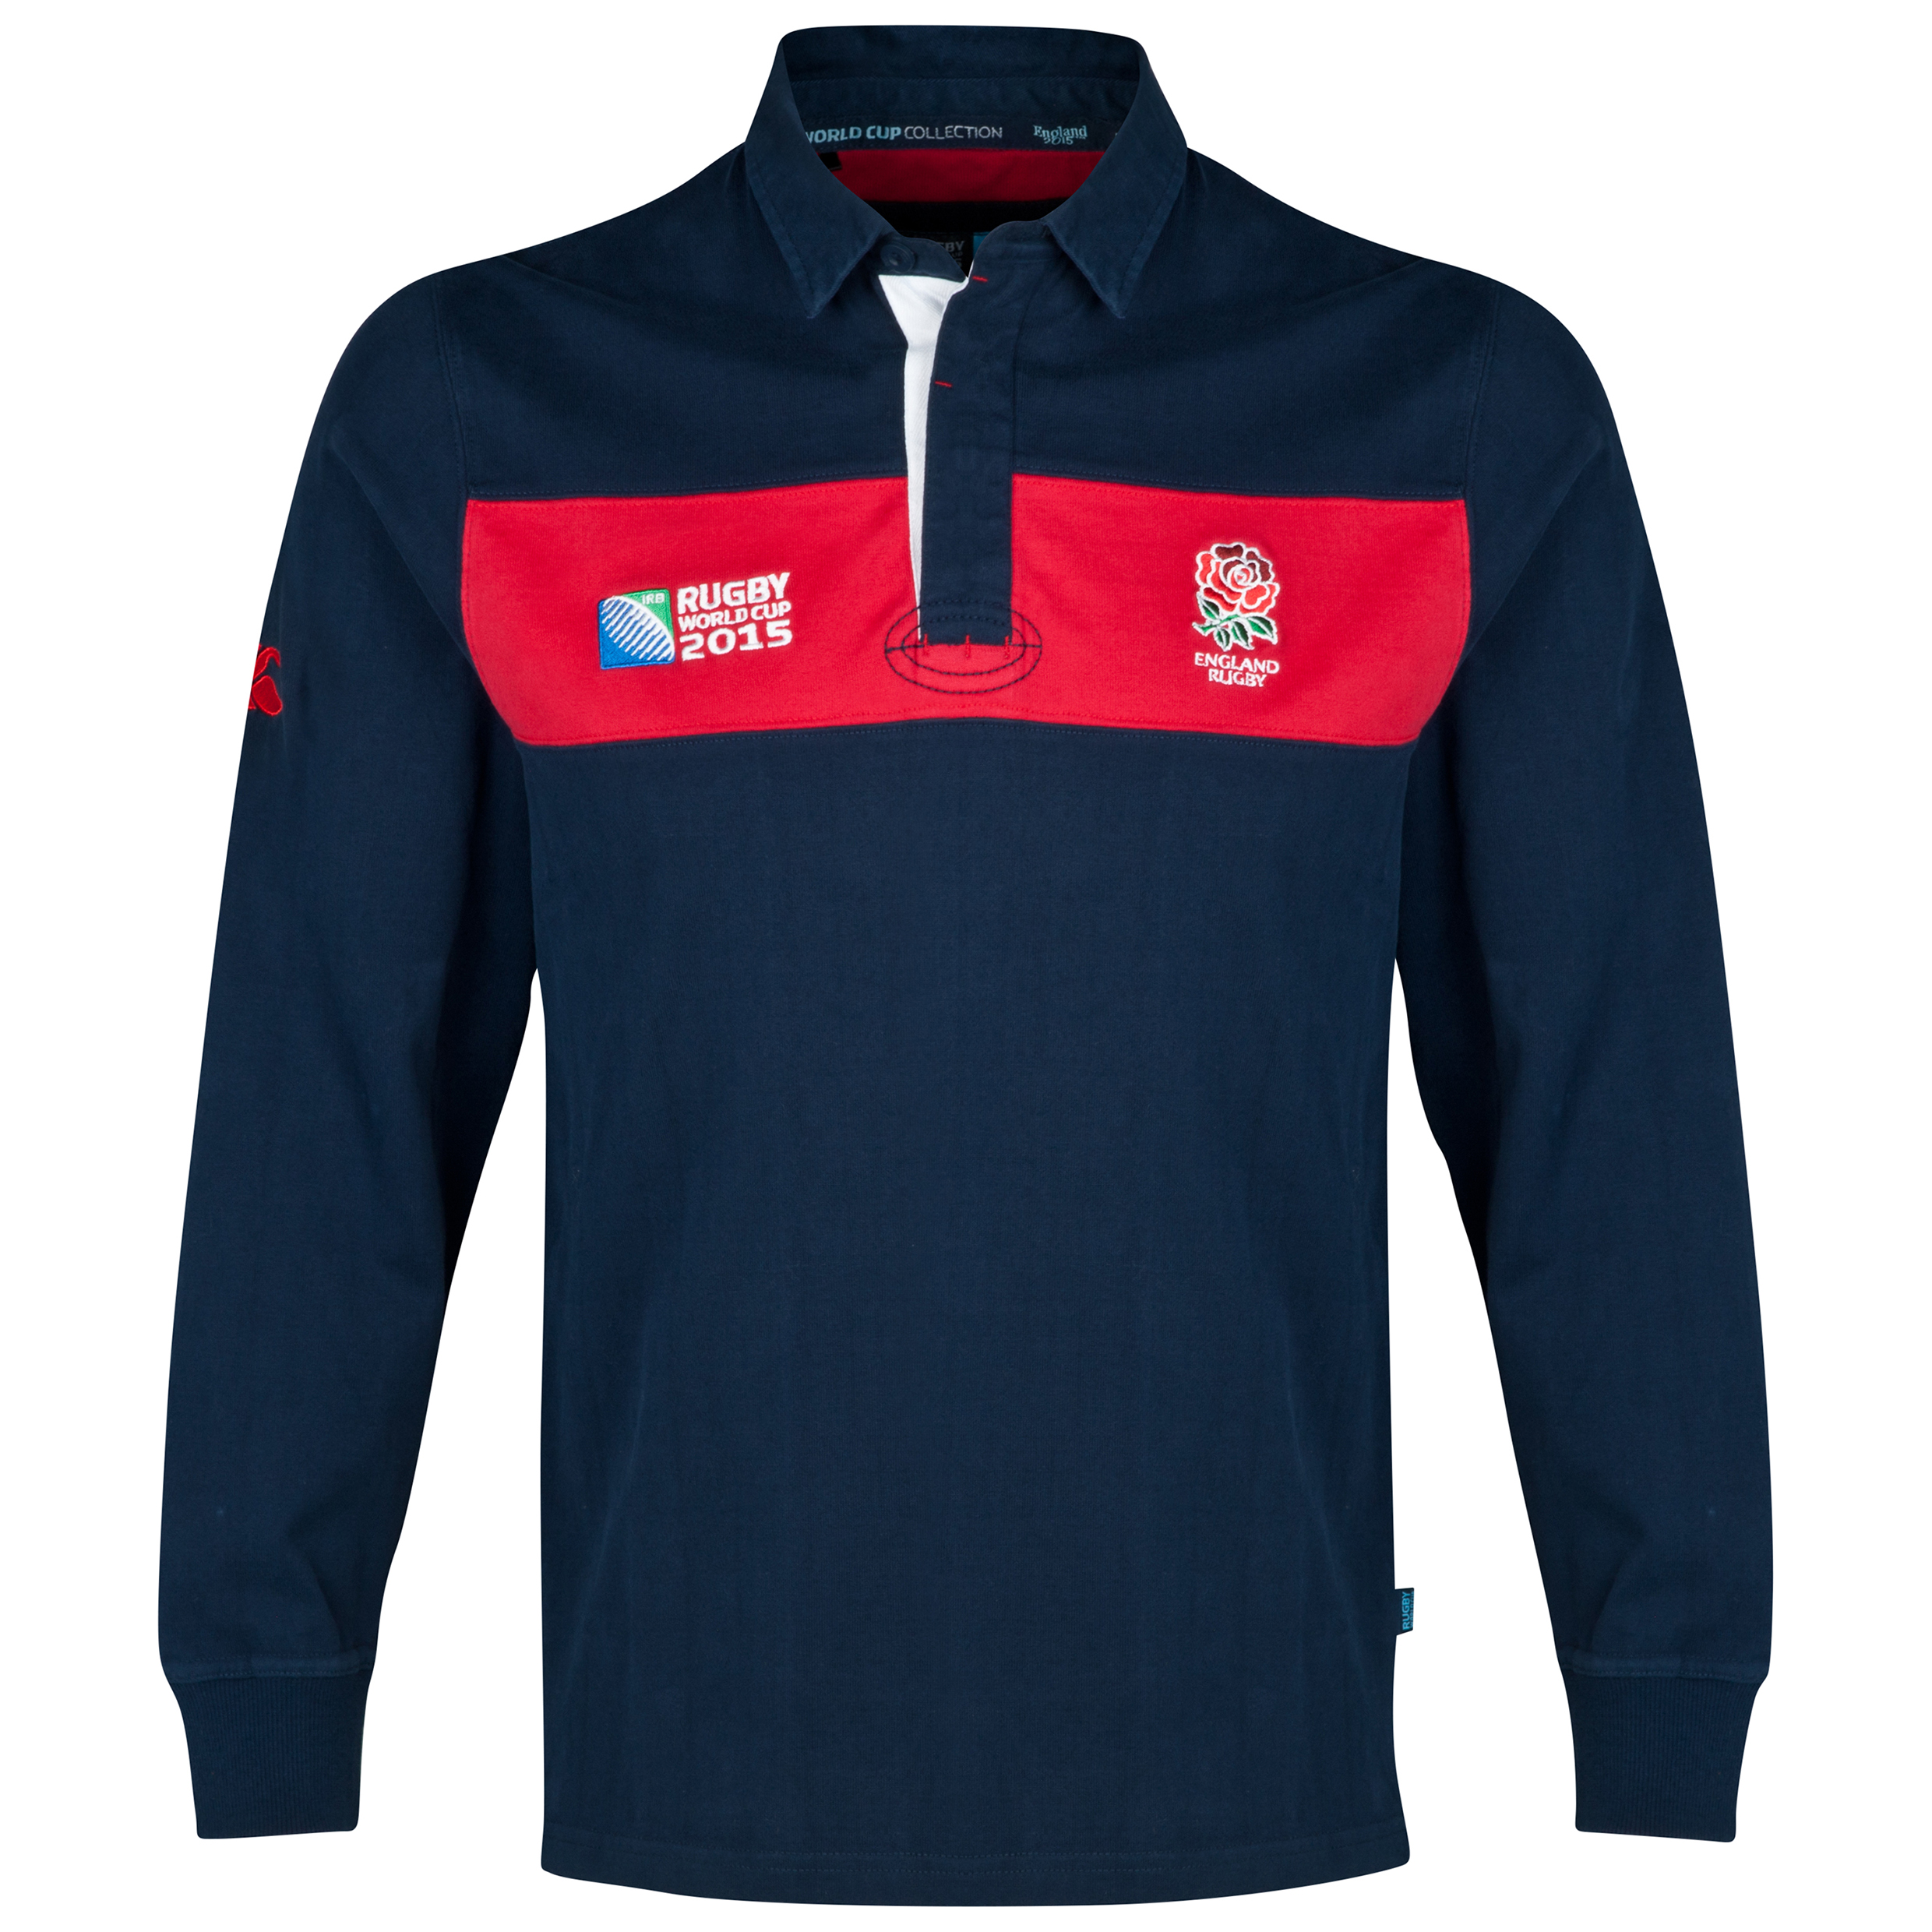 Canterbury Rugby World Cup England Rose Chestband Long Sleeve Rugby Jersey Navy